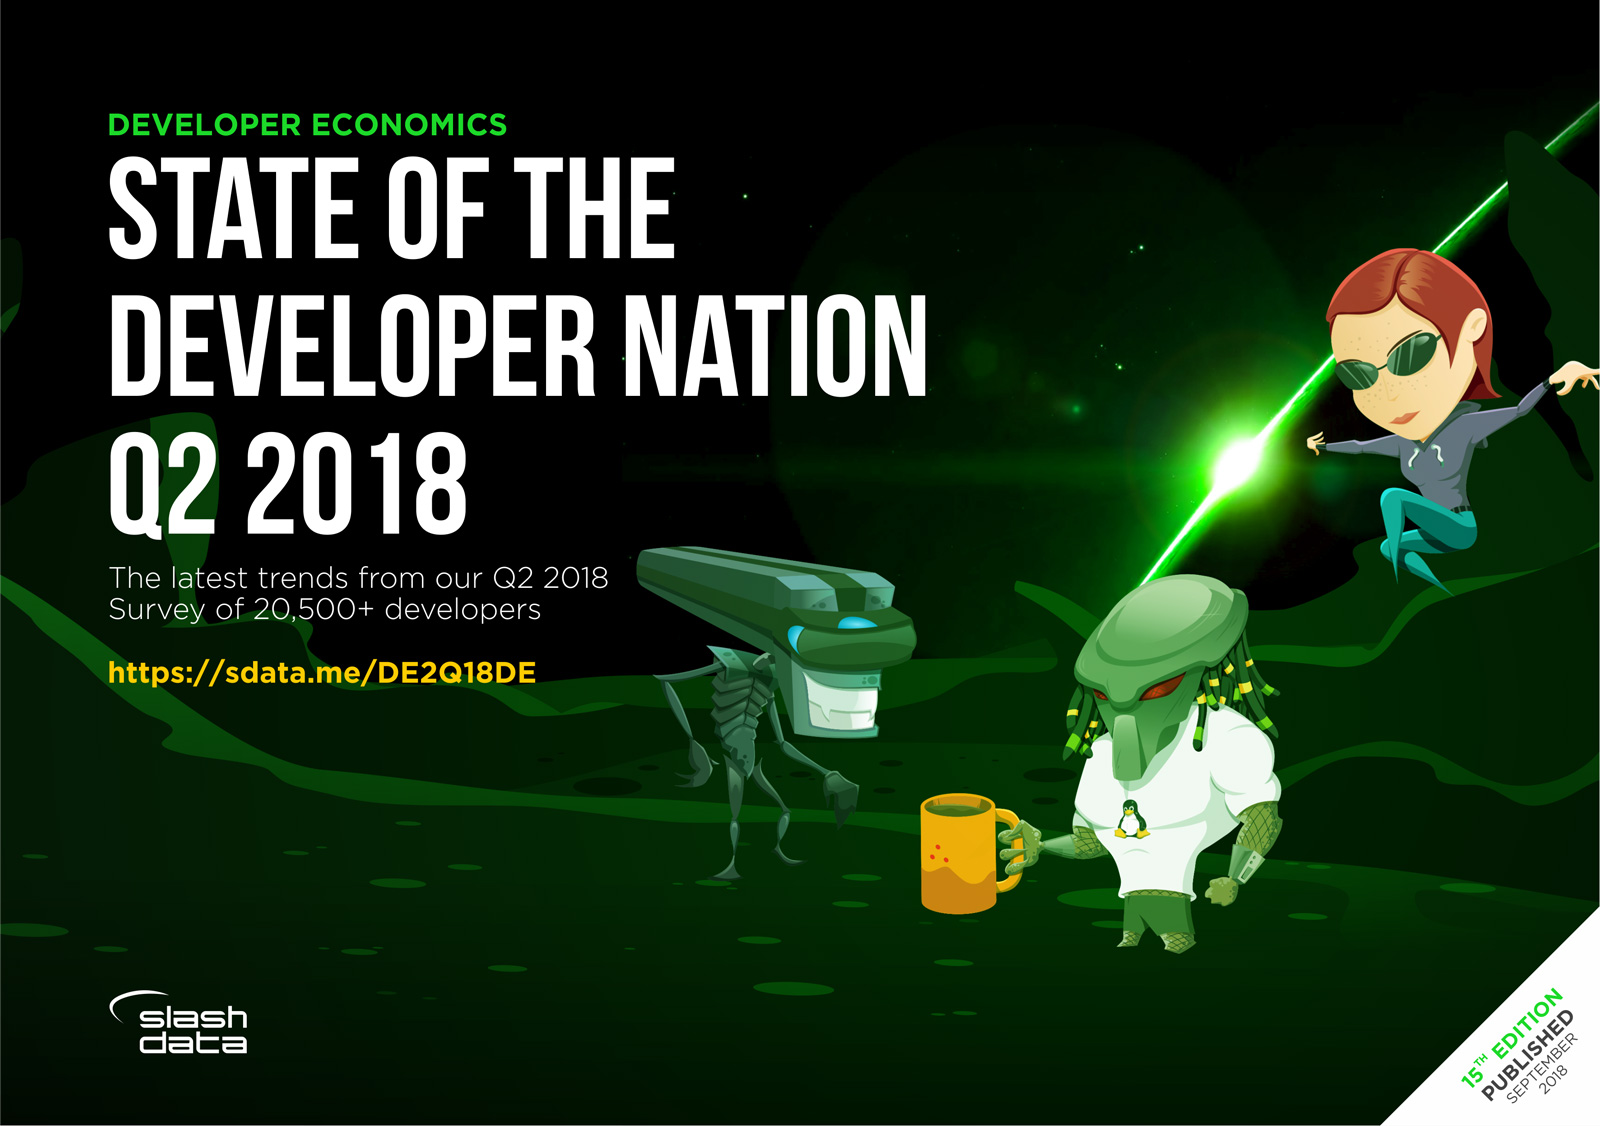 Developer Economics: State of the Developer Nation 15th Edition